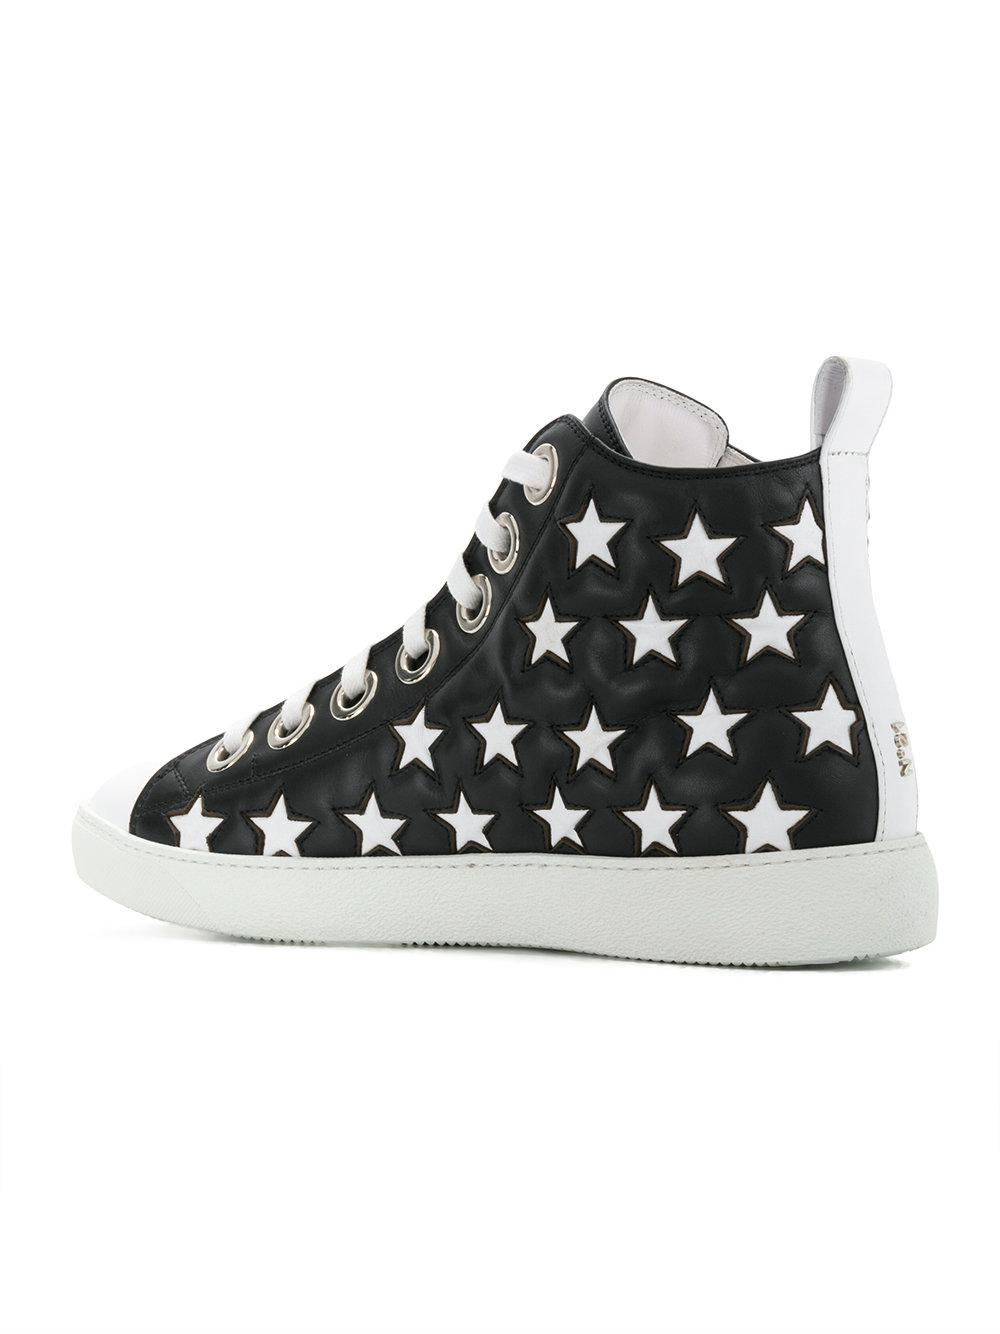 high-top star detail sneakers - Black N°21 4uCZ4M4F